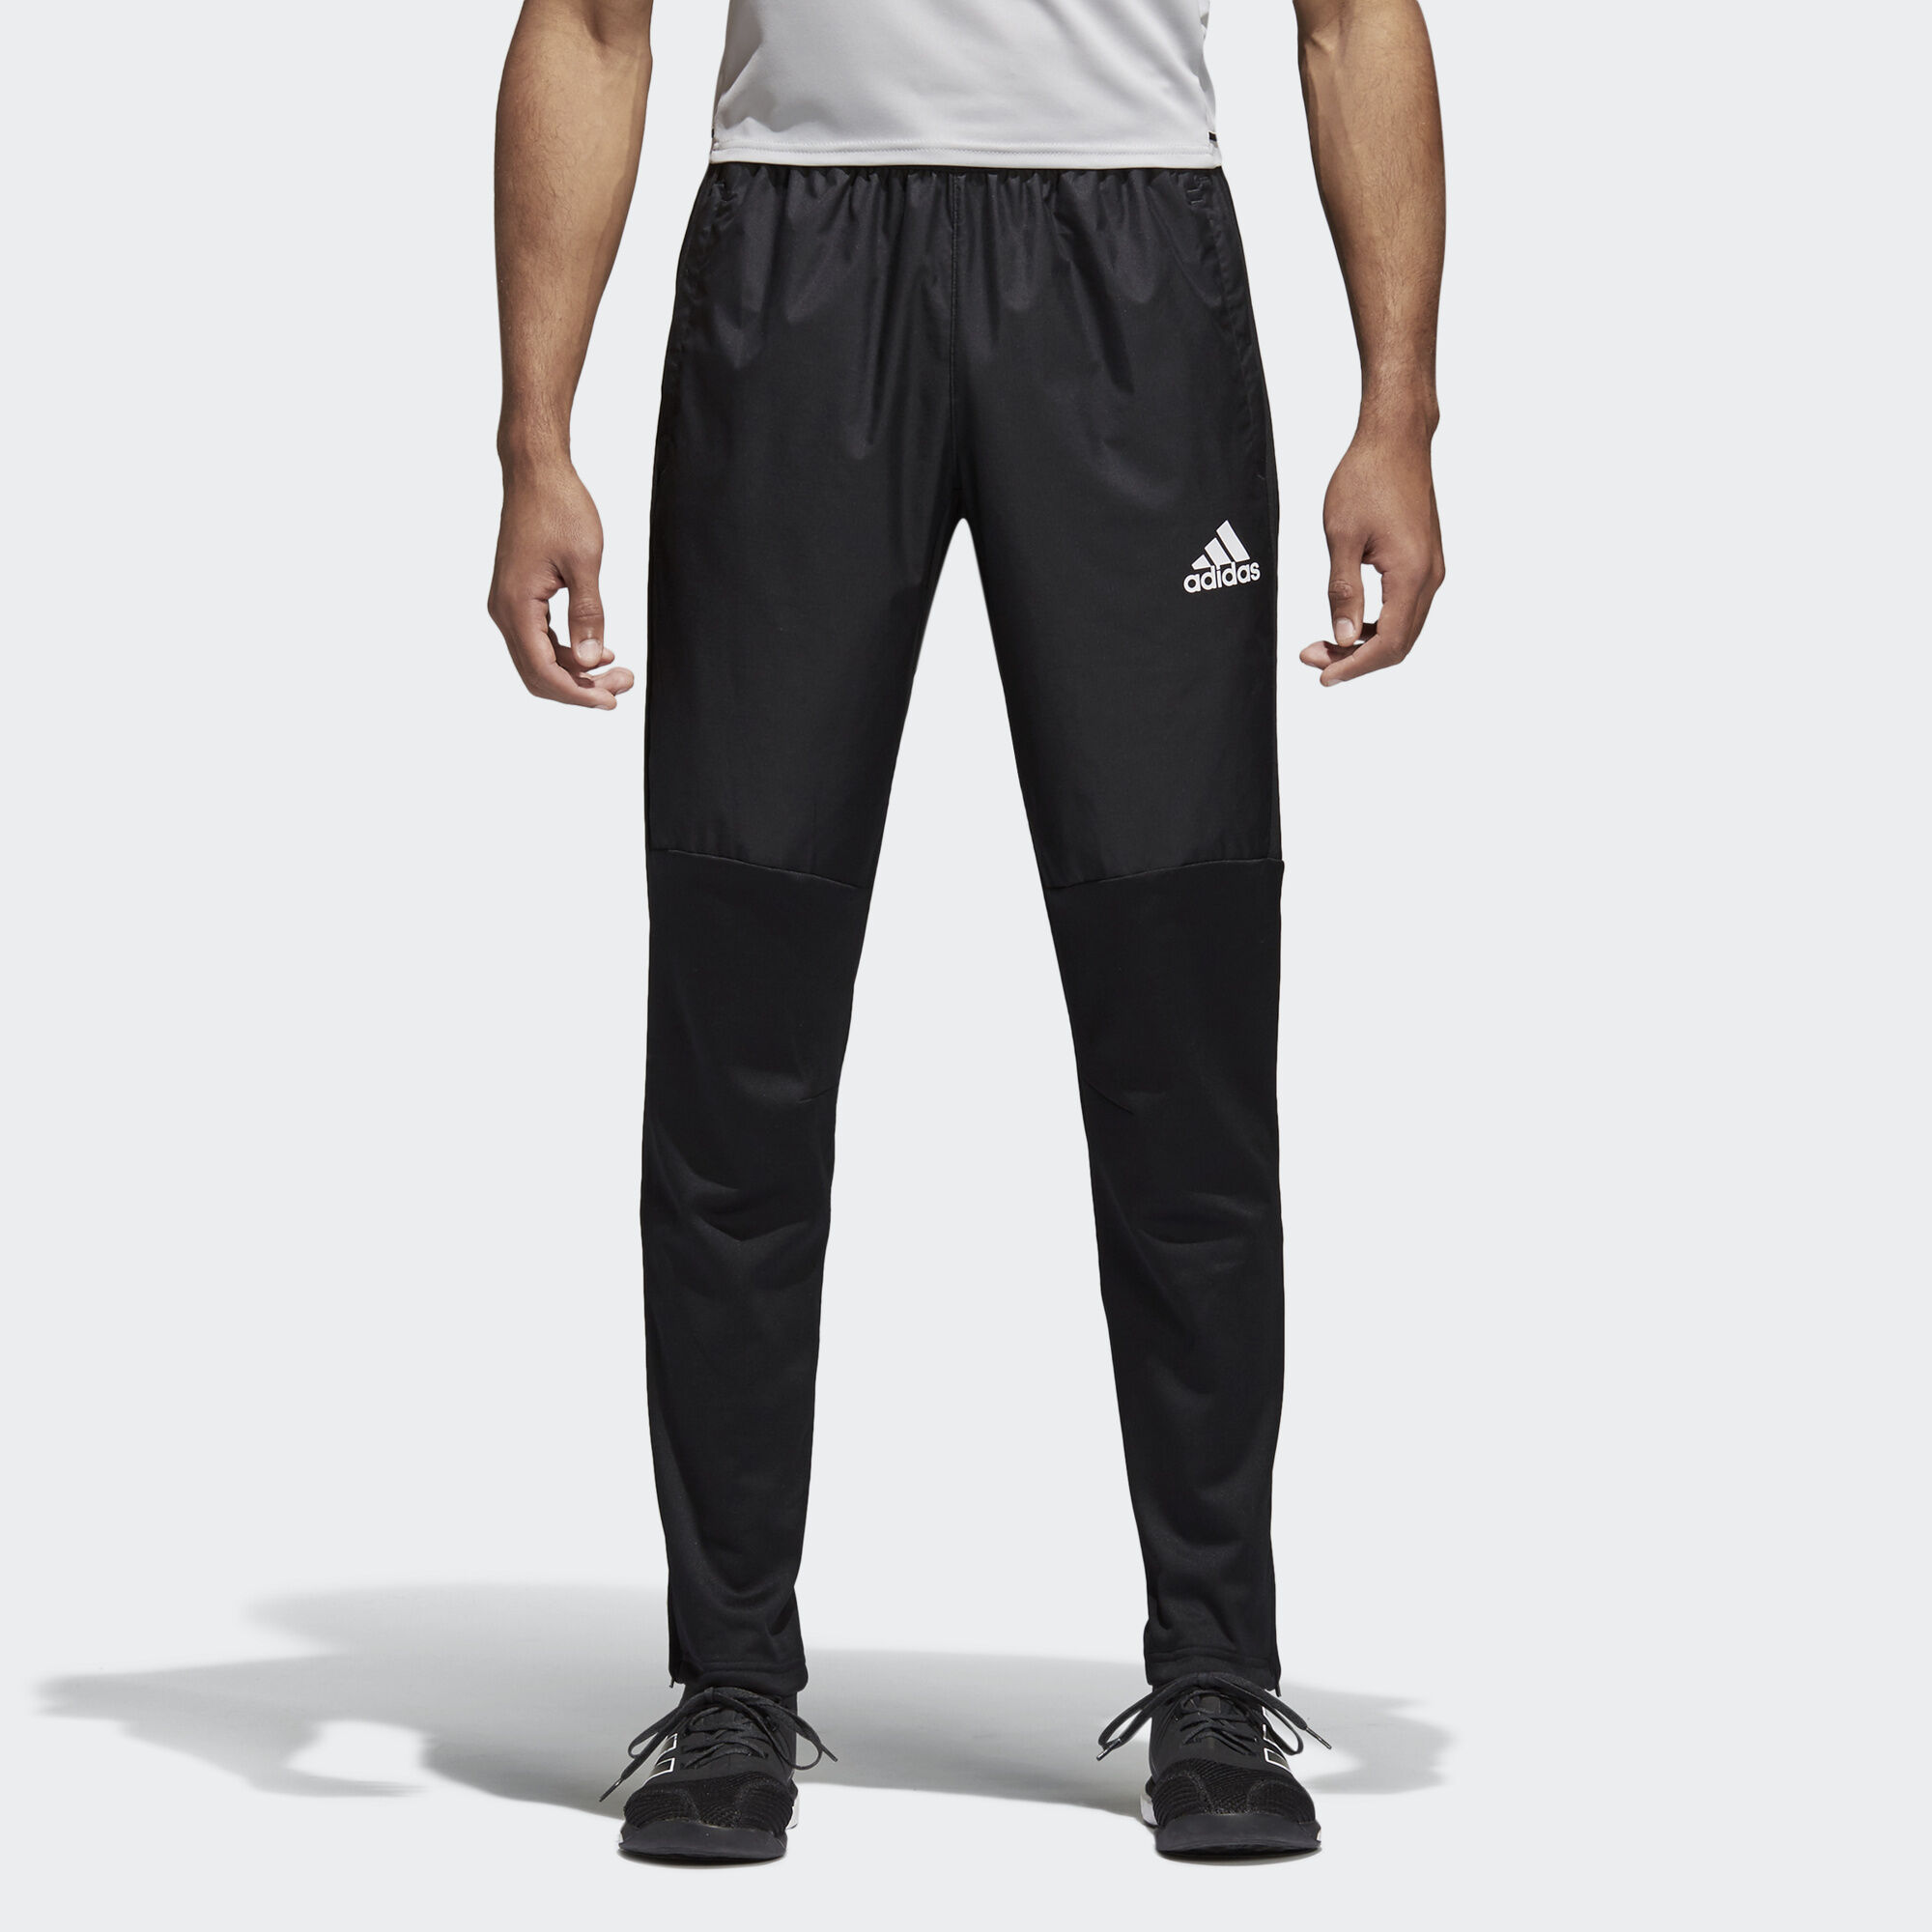 adidas tapered soccer pants